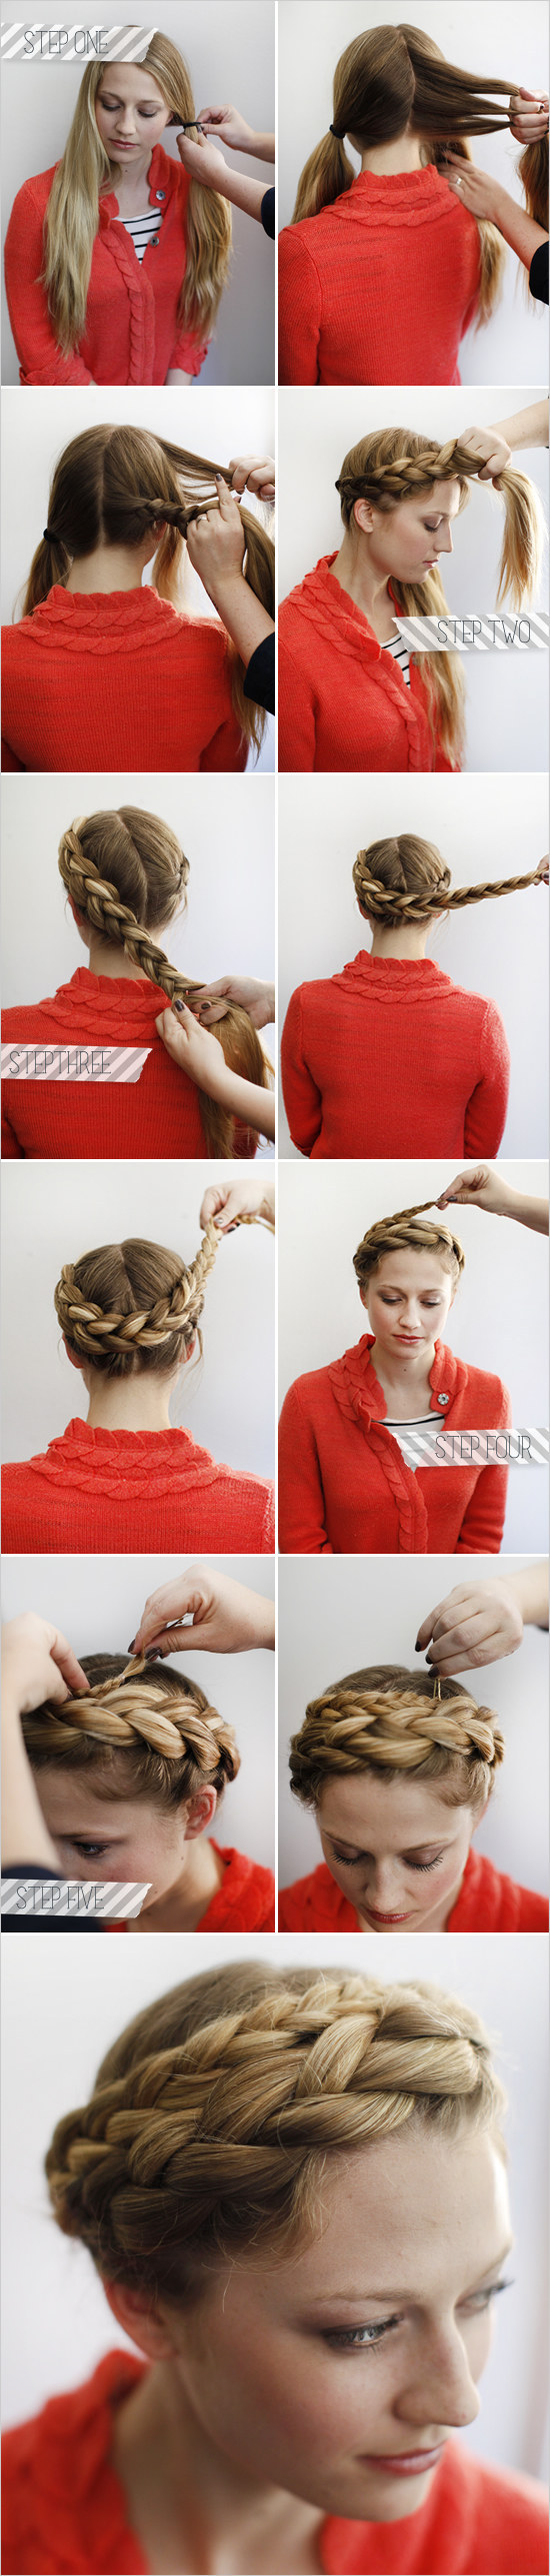 Surprising 23 Creative Braid Tutorials That Are Deceptively Easy Hairstyles For Women Draintrainus